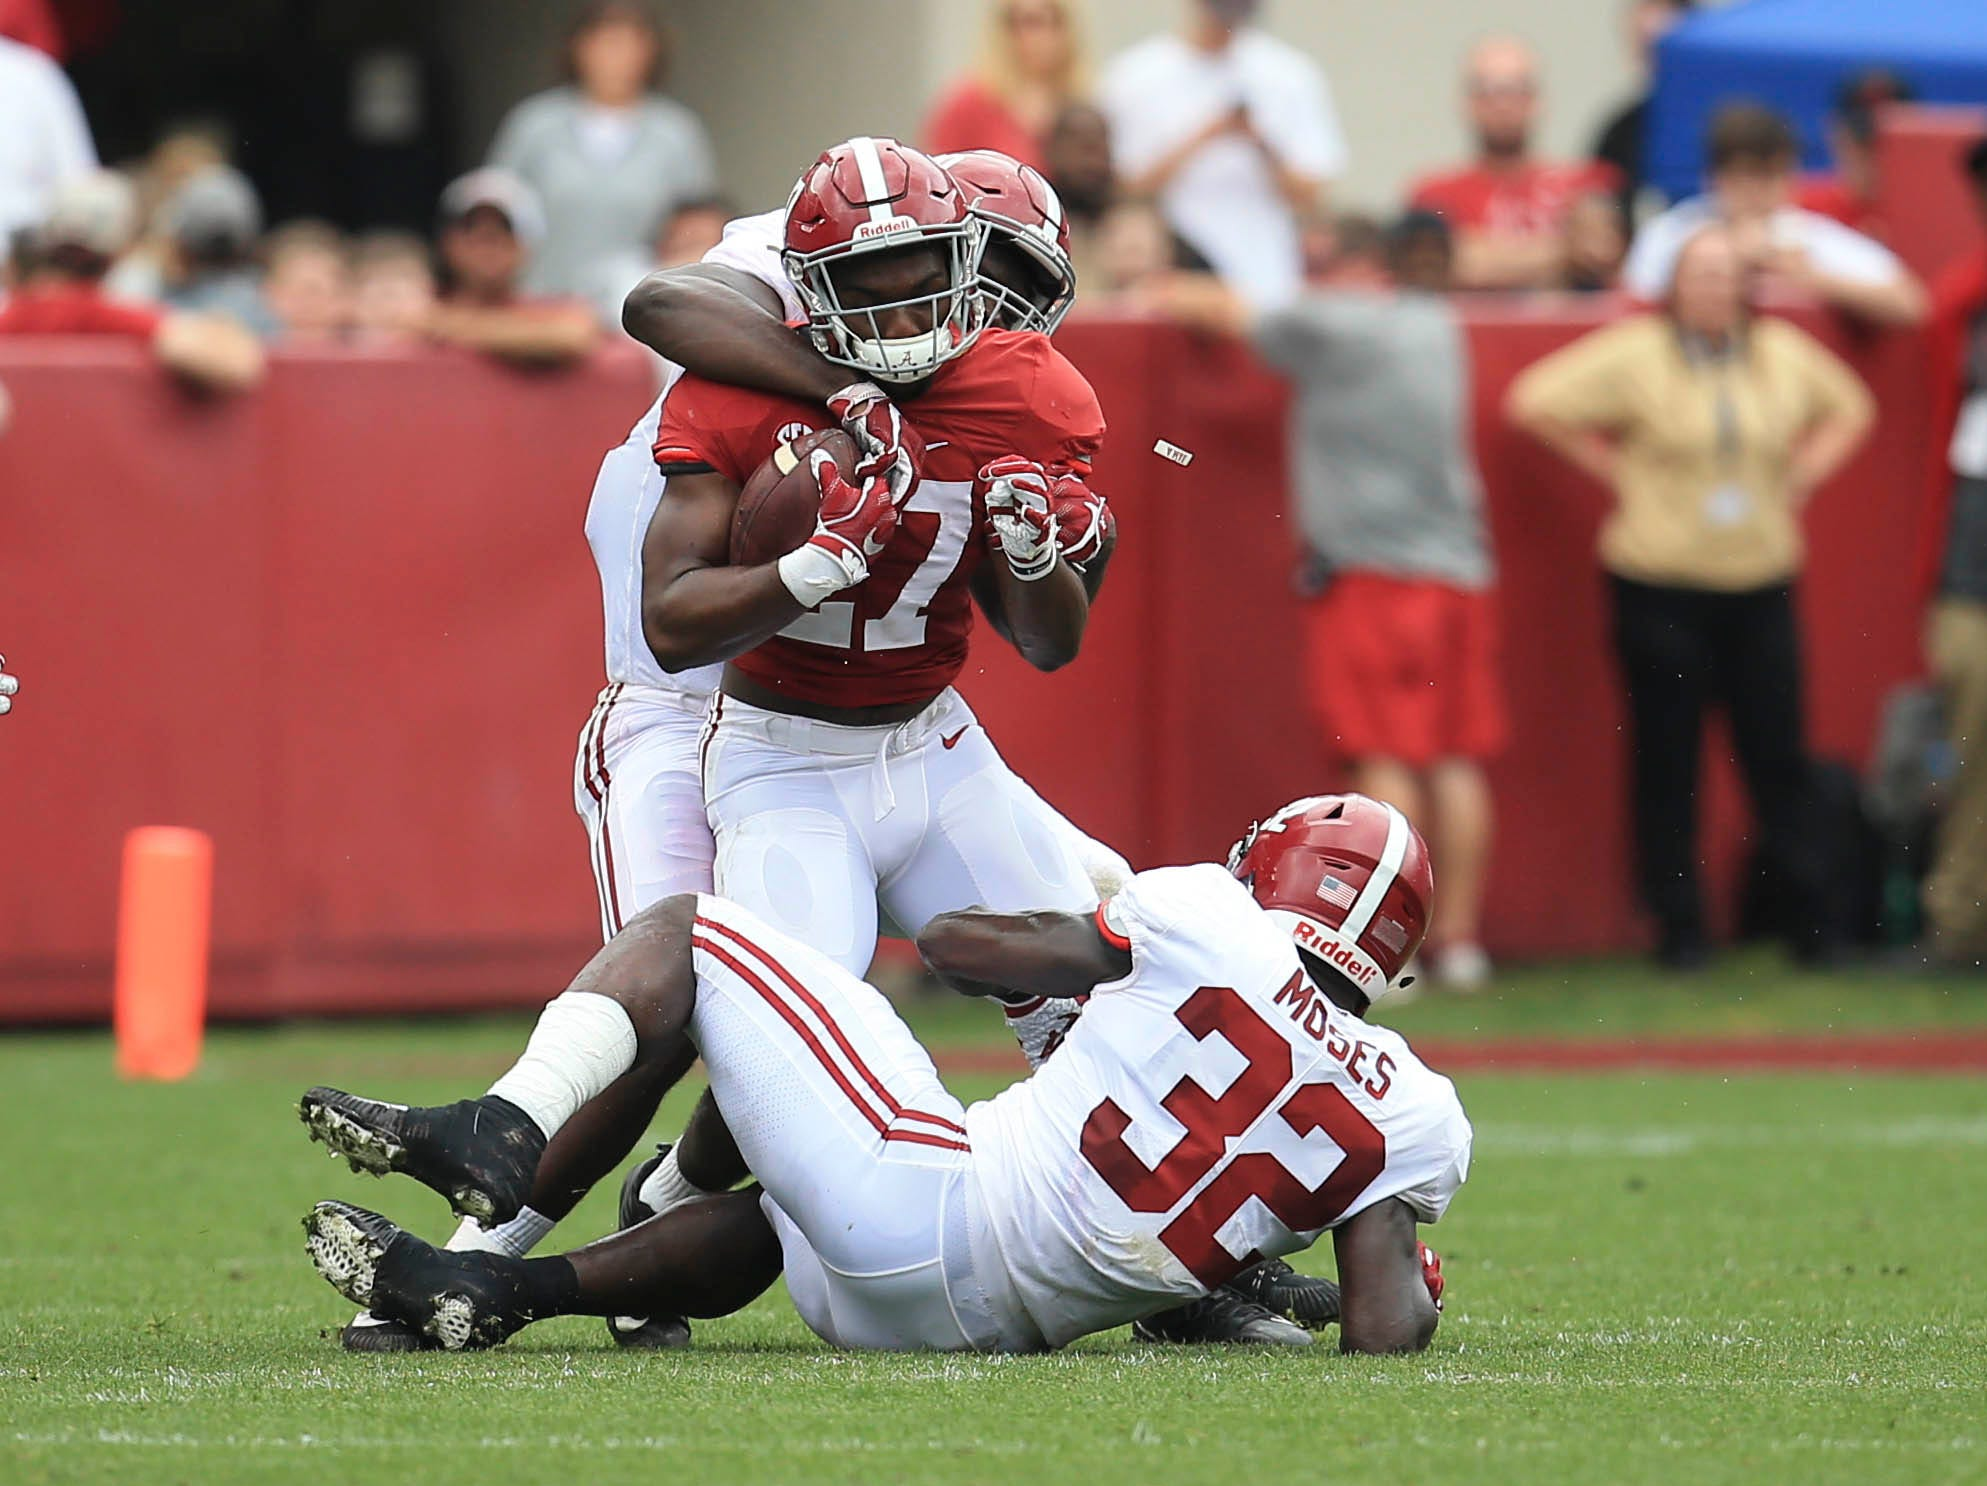 Apr 13, 2019; Tuscaloosa, AL, USA; Alabama Crimson Tide running back Jerome Ford (27) is tackled during the spring game at Bryant-Denny Stadium. Mandatory Credit: Marvin Gentry-USA TODAY Sports